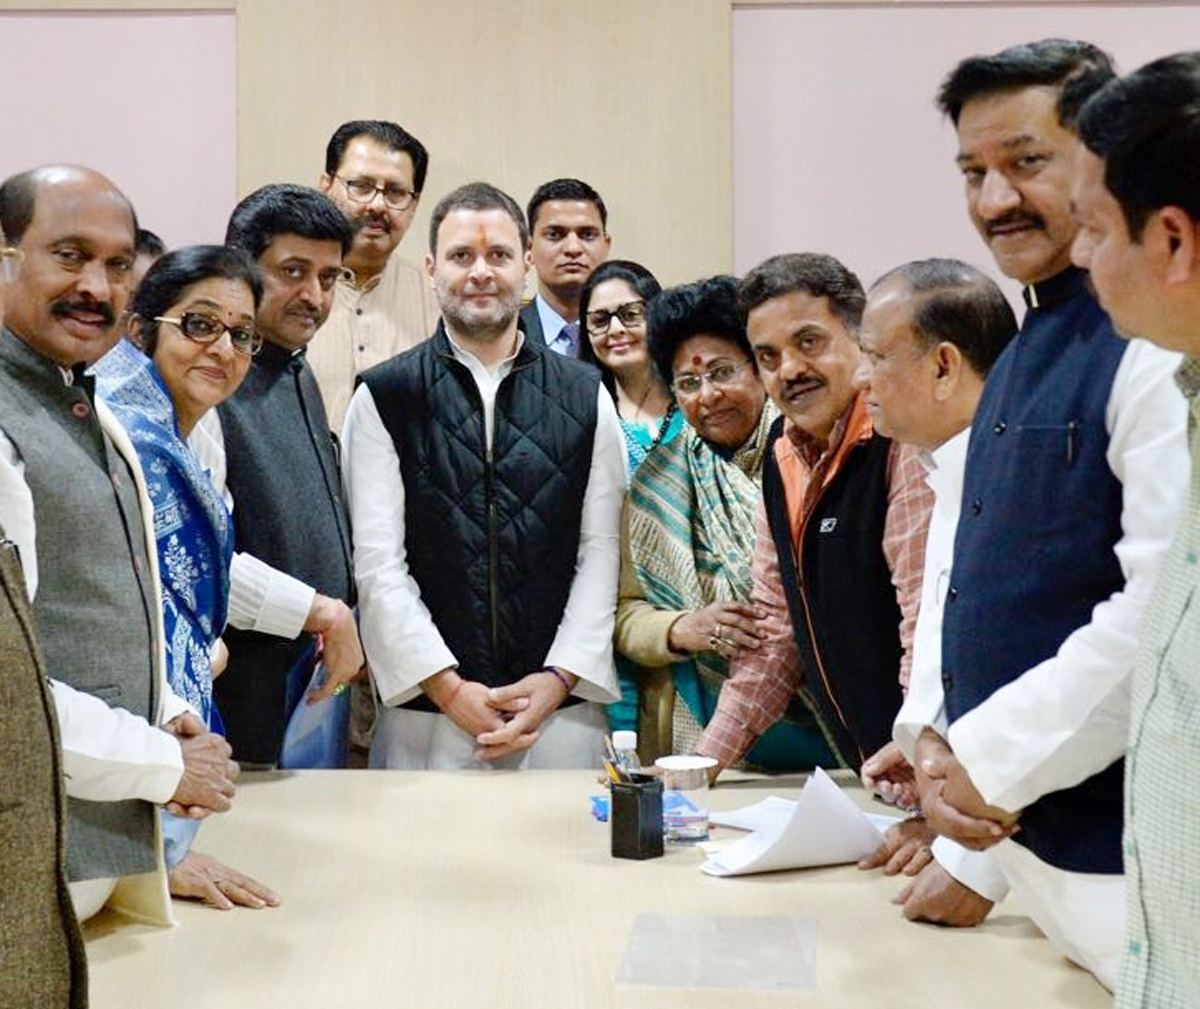 Congress Party Leader Rahul Gandhi Filed Nomination for AICC President.